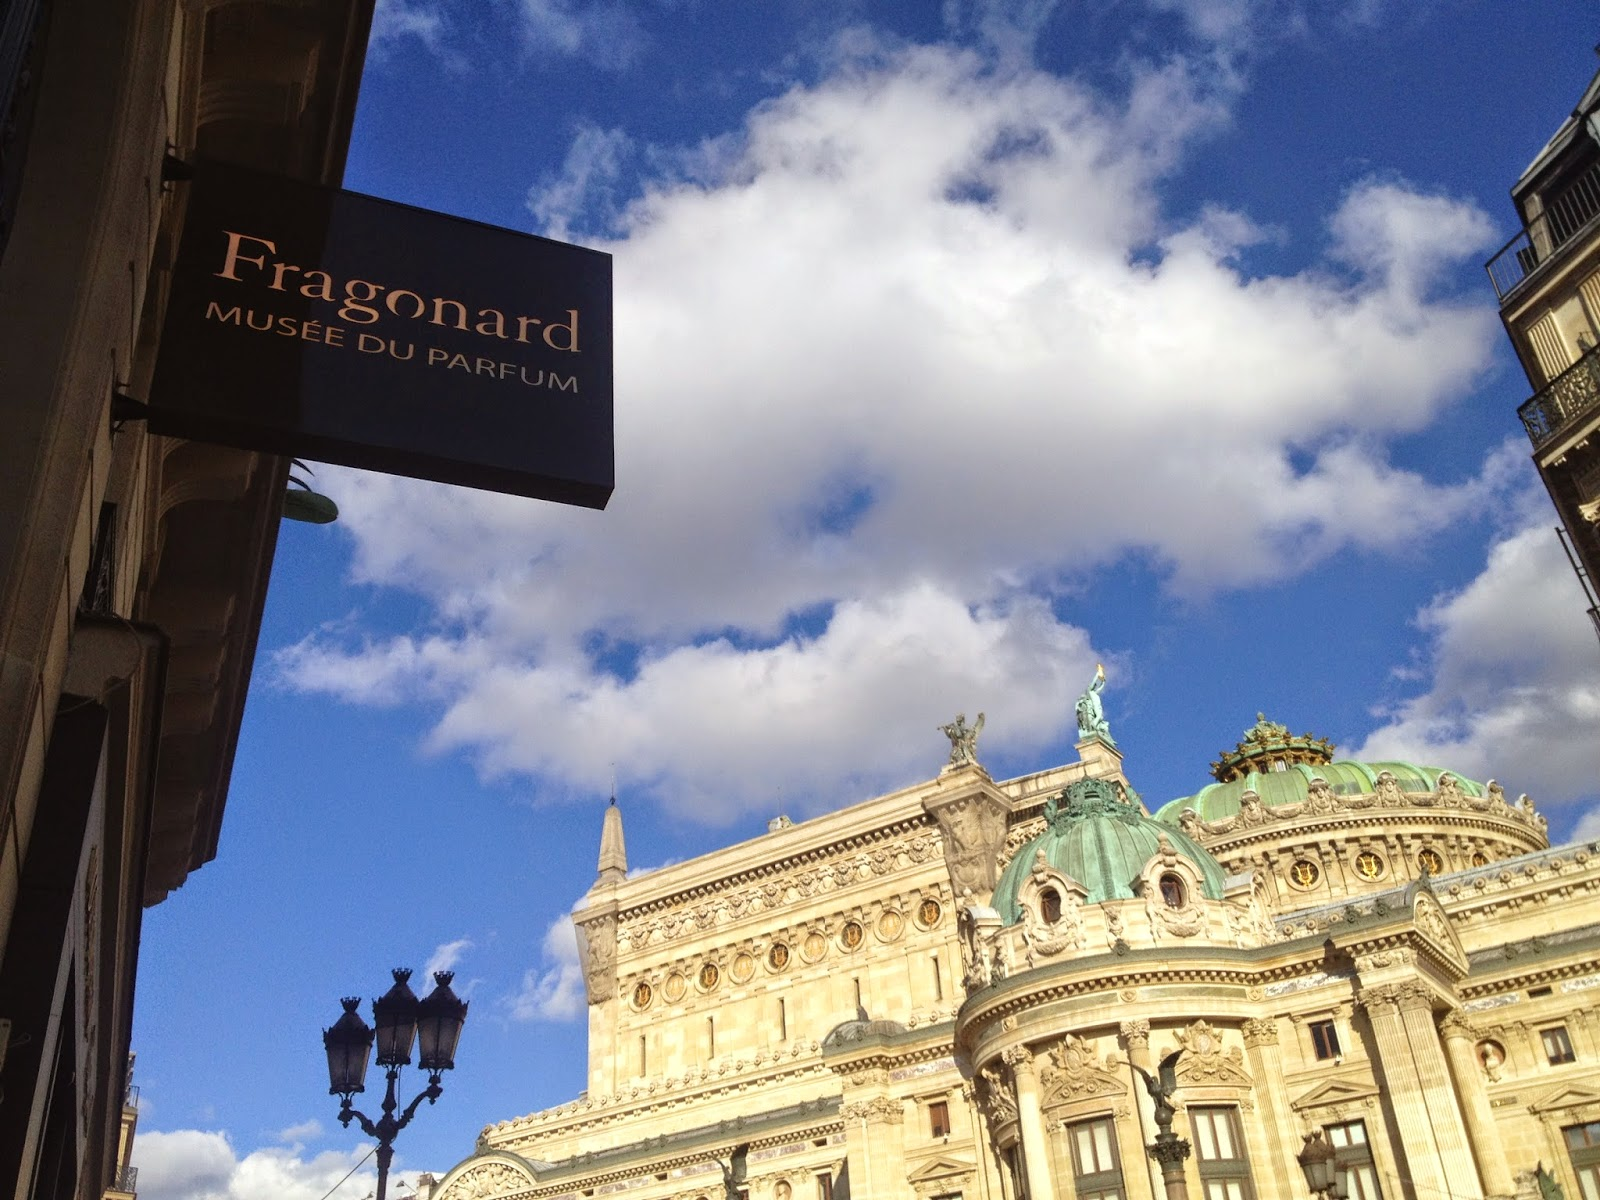 Say oui to paris fragrant fun at the fragonard mus e du parfum - Musee fragonard paris ...